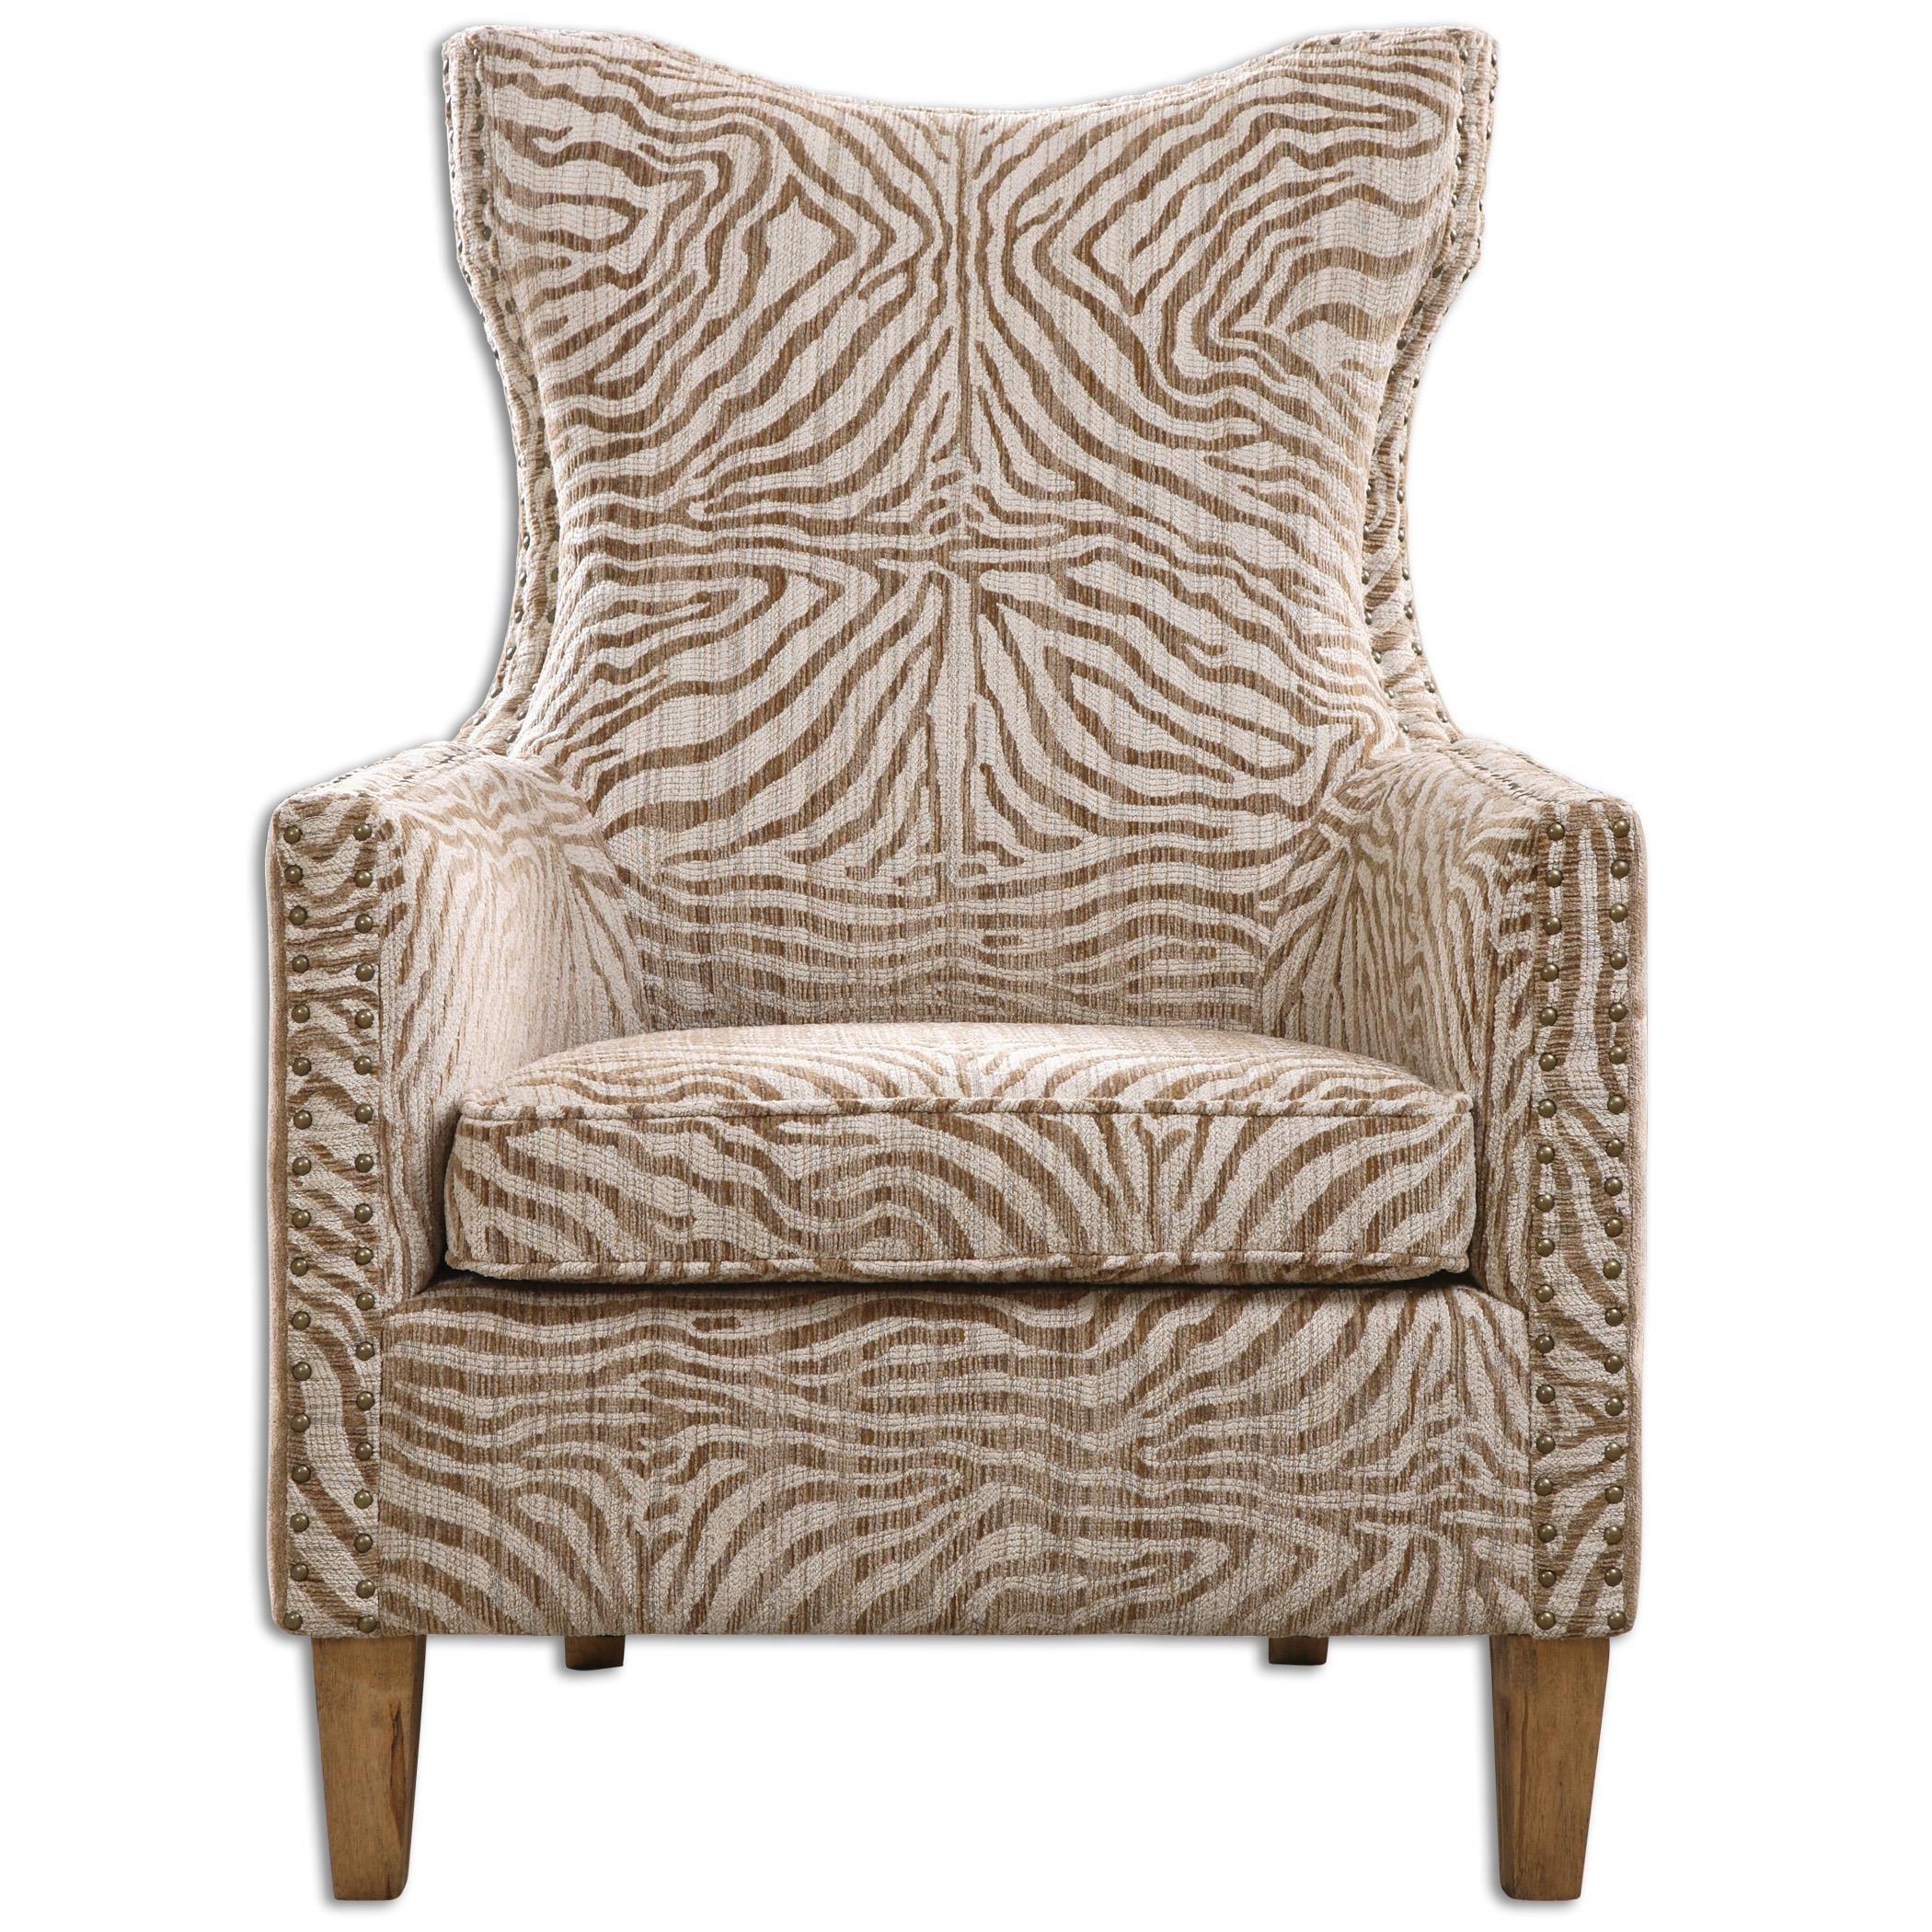 Uttermost Accent Furniture Kiango Animal Pattern Armchair - Item Number: 23208